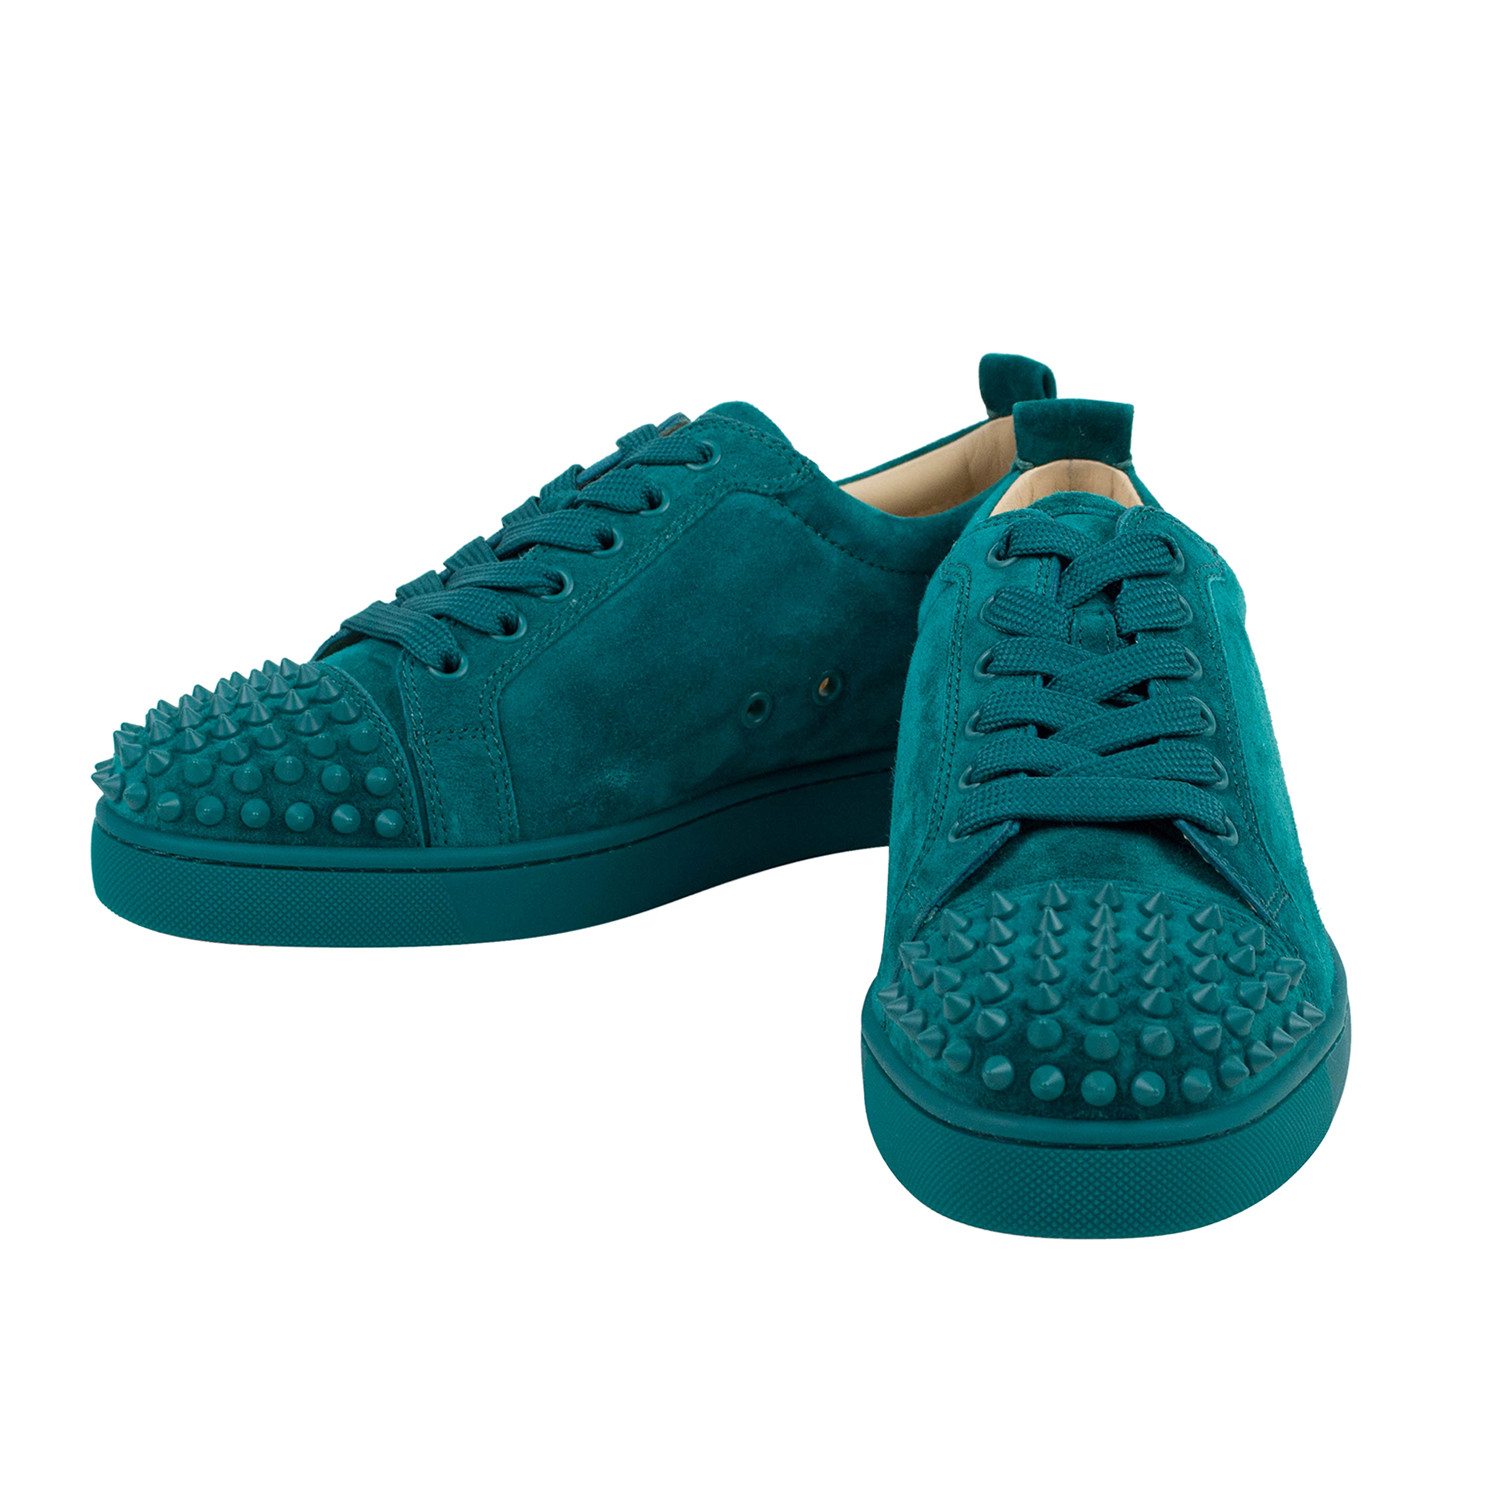 brand new 2fd2d b6891 Louis Junior Spikes Suede Low-Top Sneakers // Green (US: 6 ...